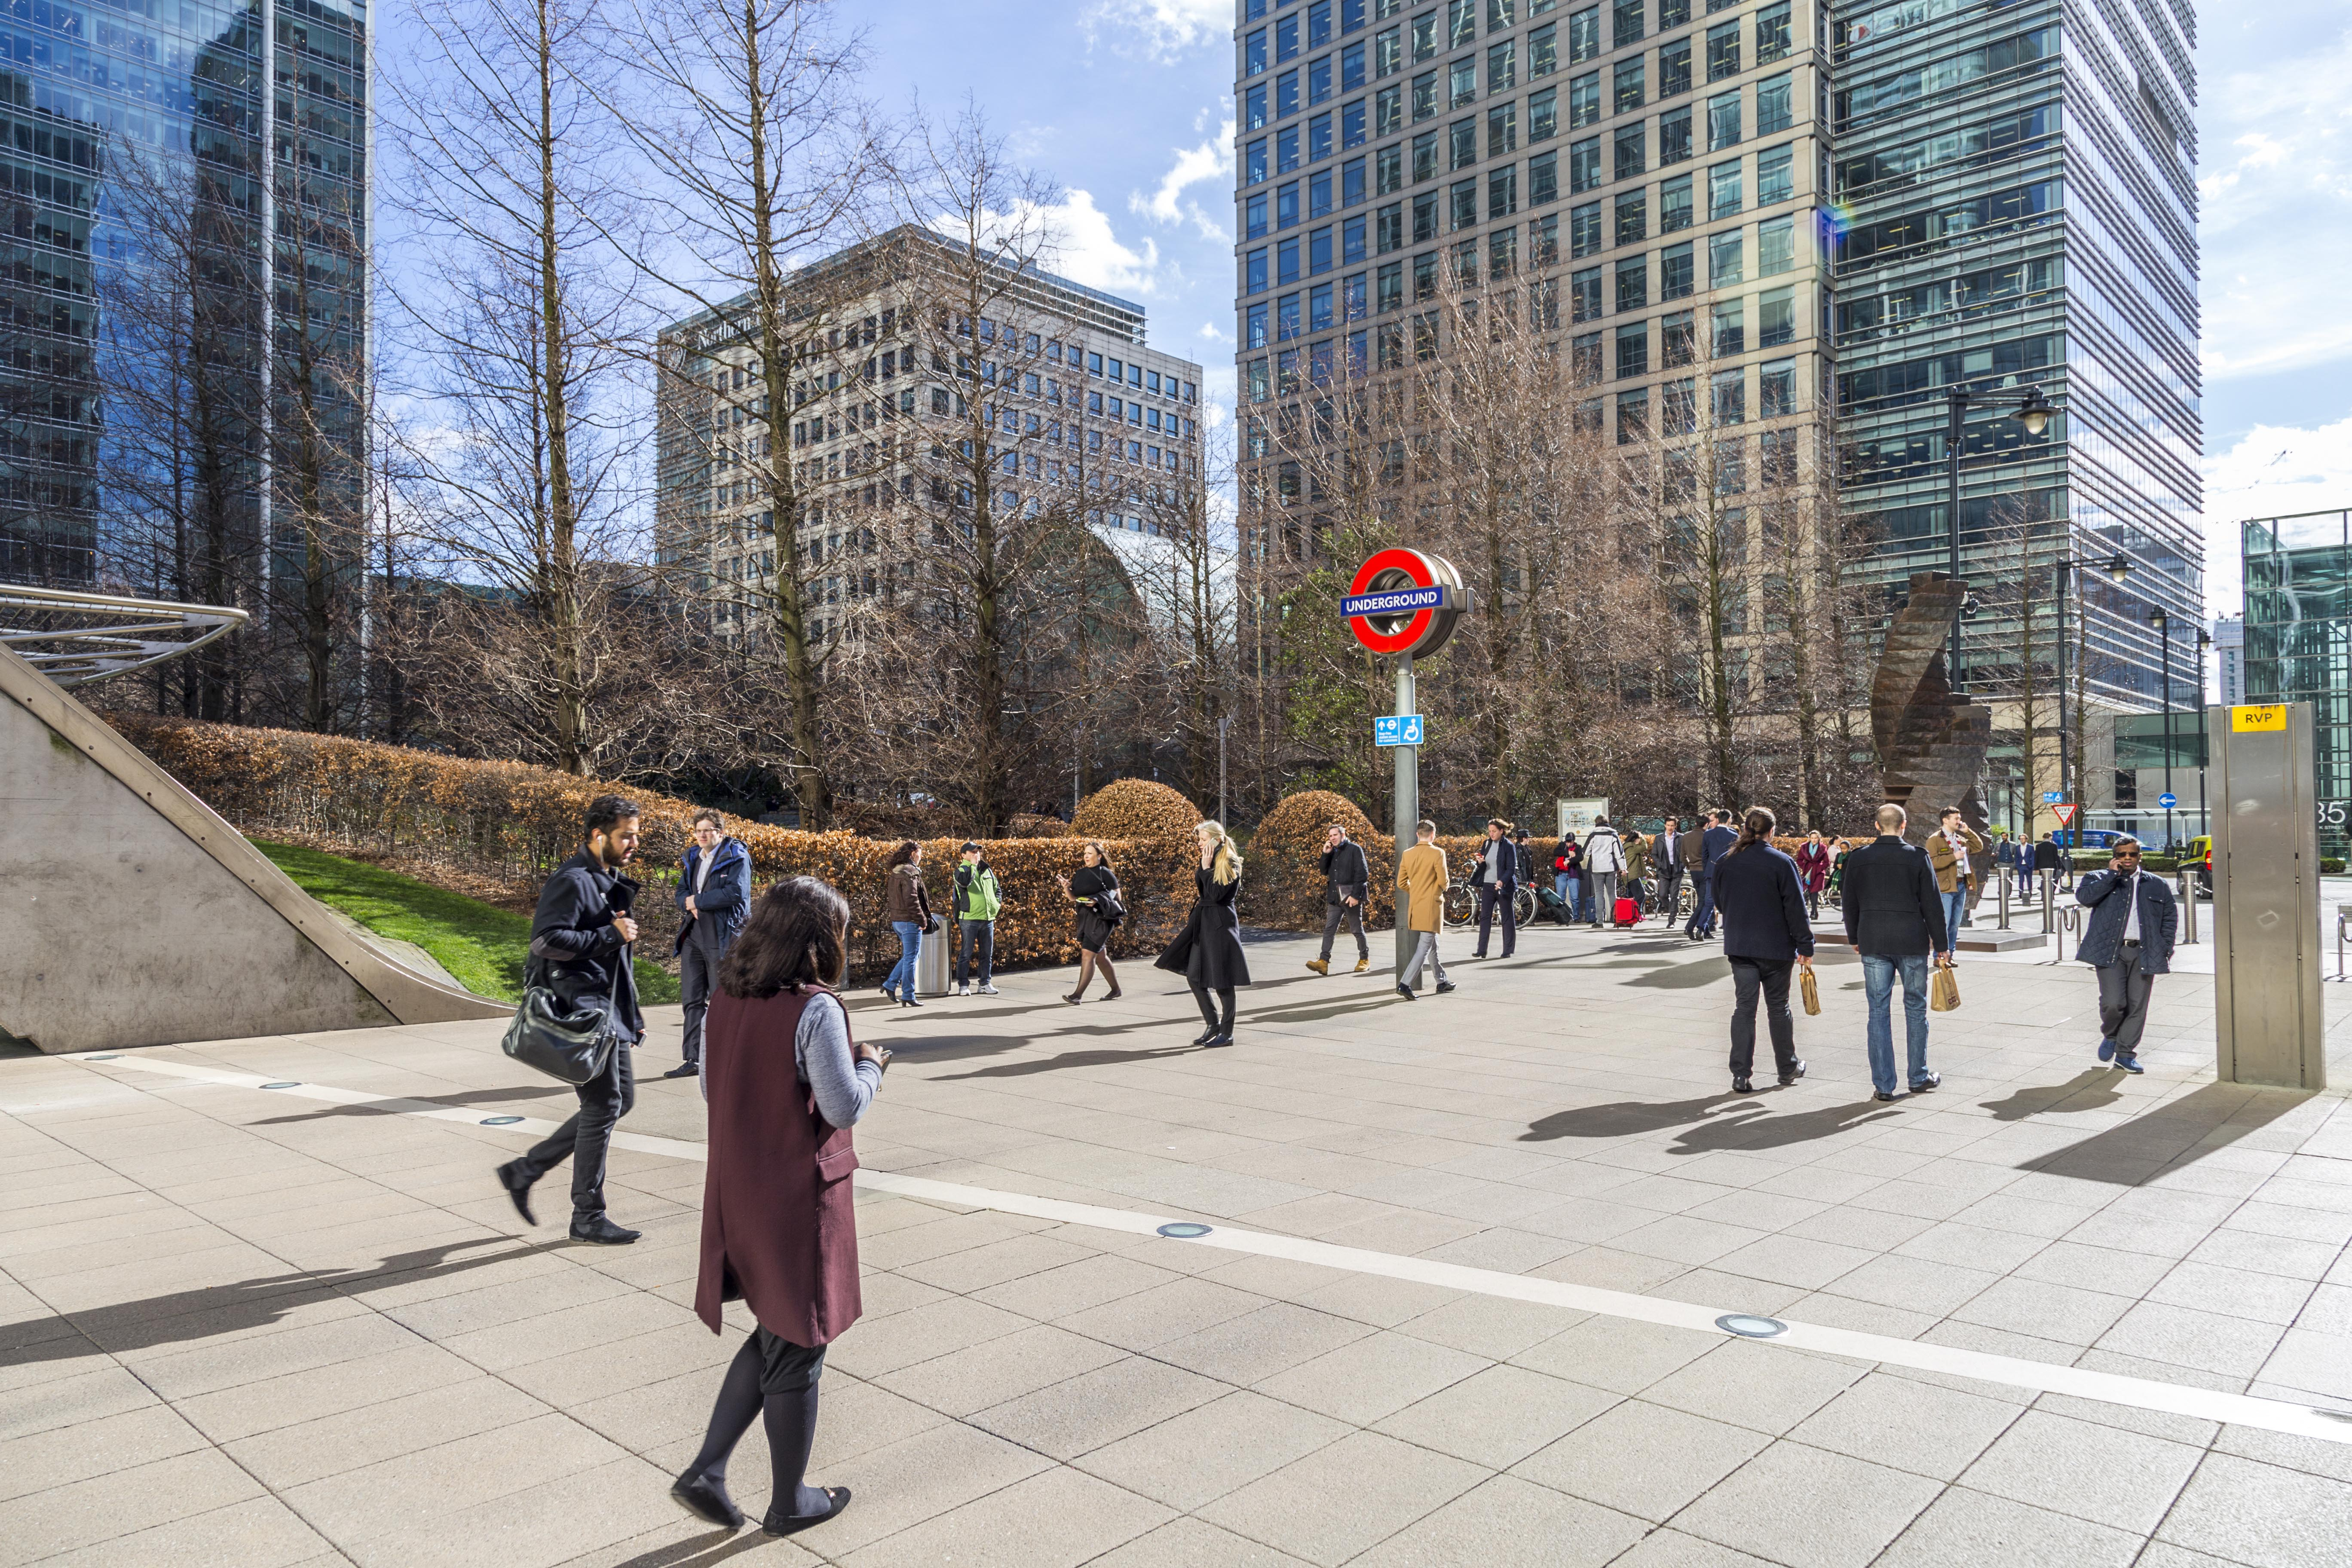 A sunny day outside Canary Wharf station in London